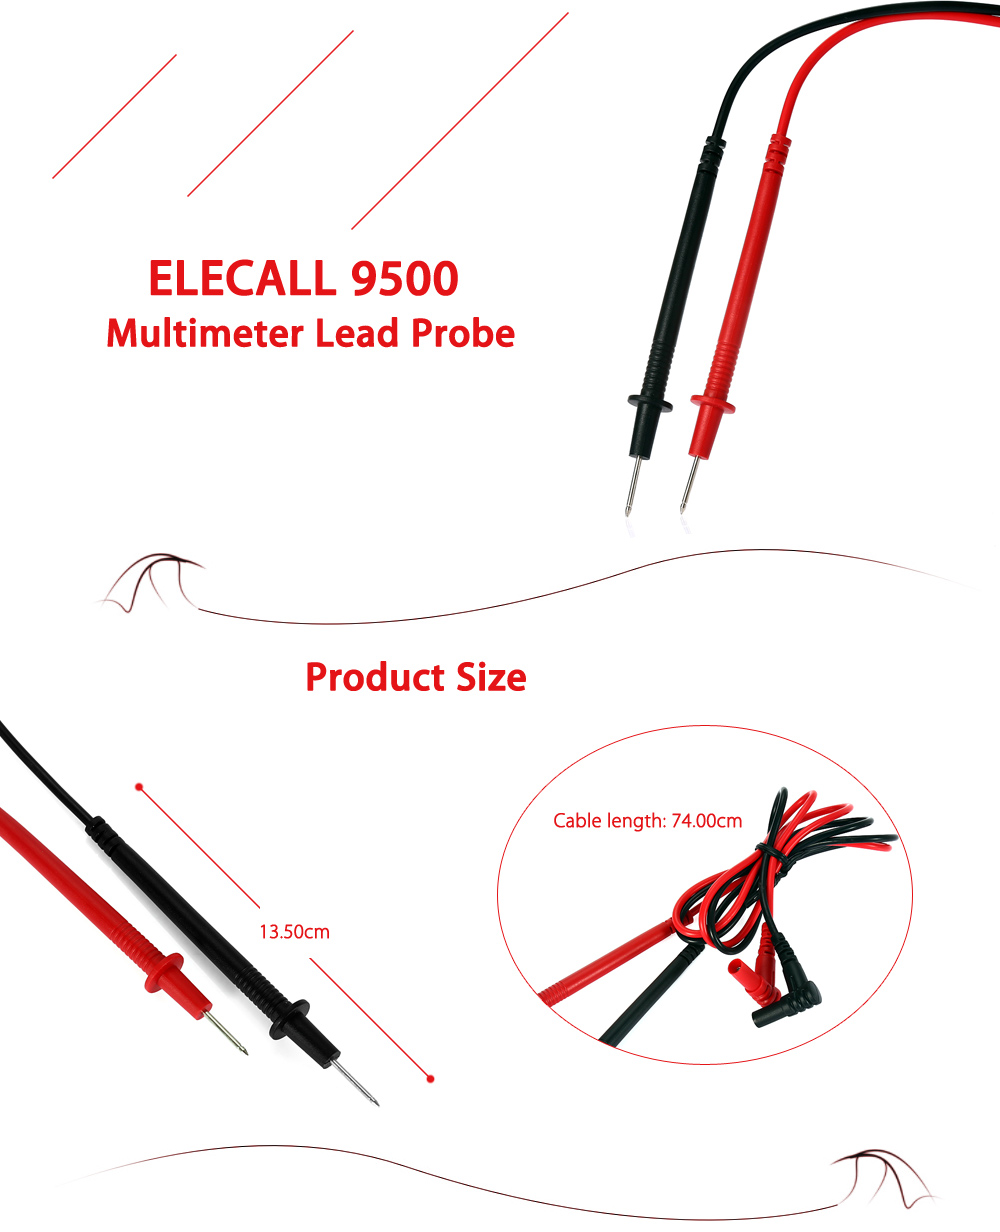 ELECALL 9500 Universal Multimeter Lead Probe with Connector Cable for Testing